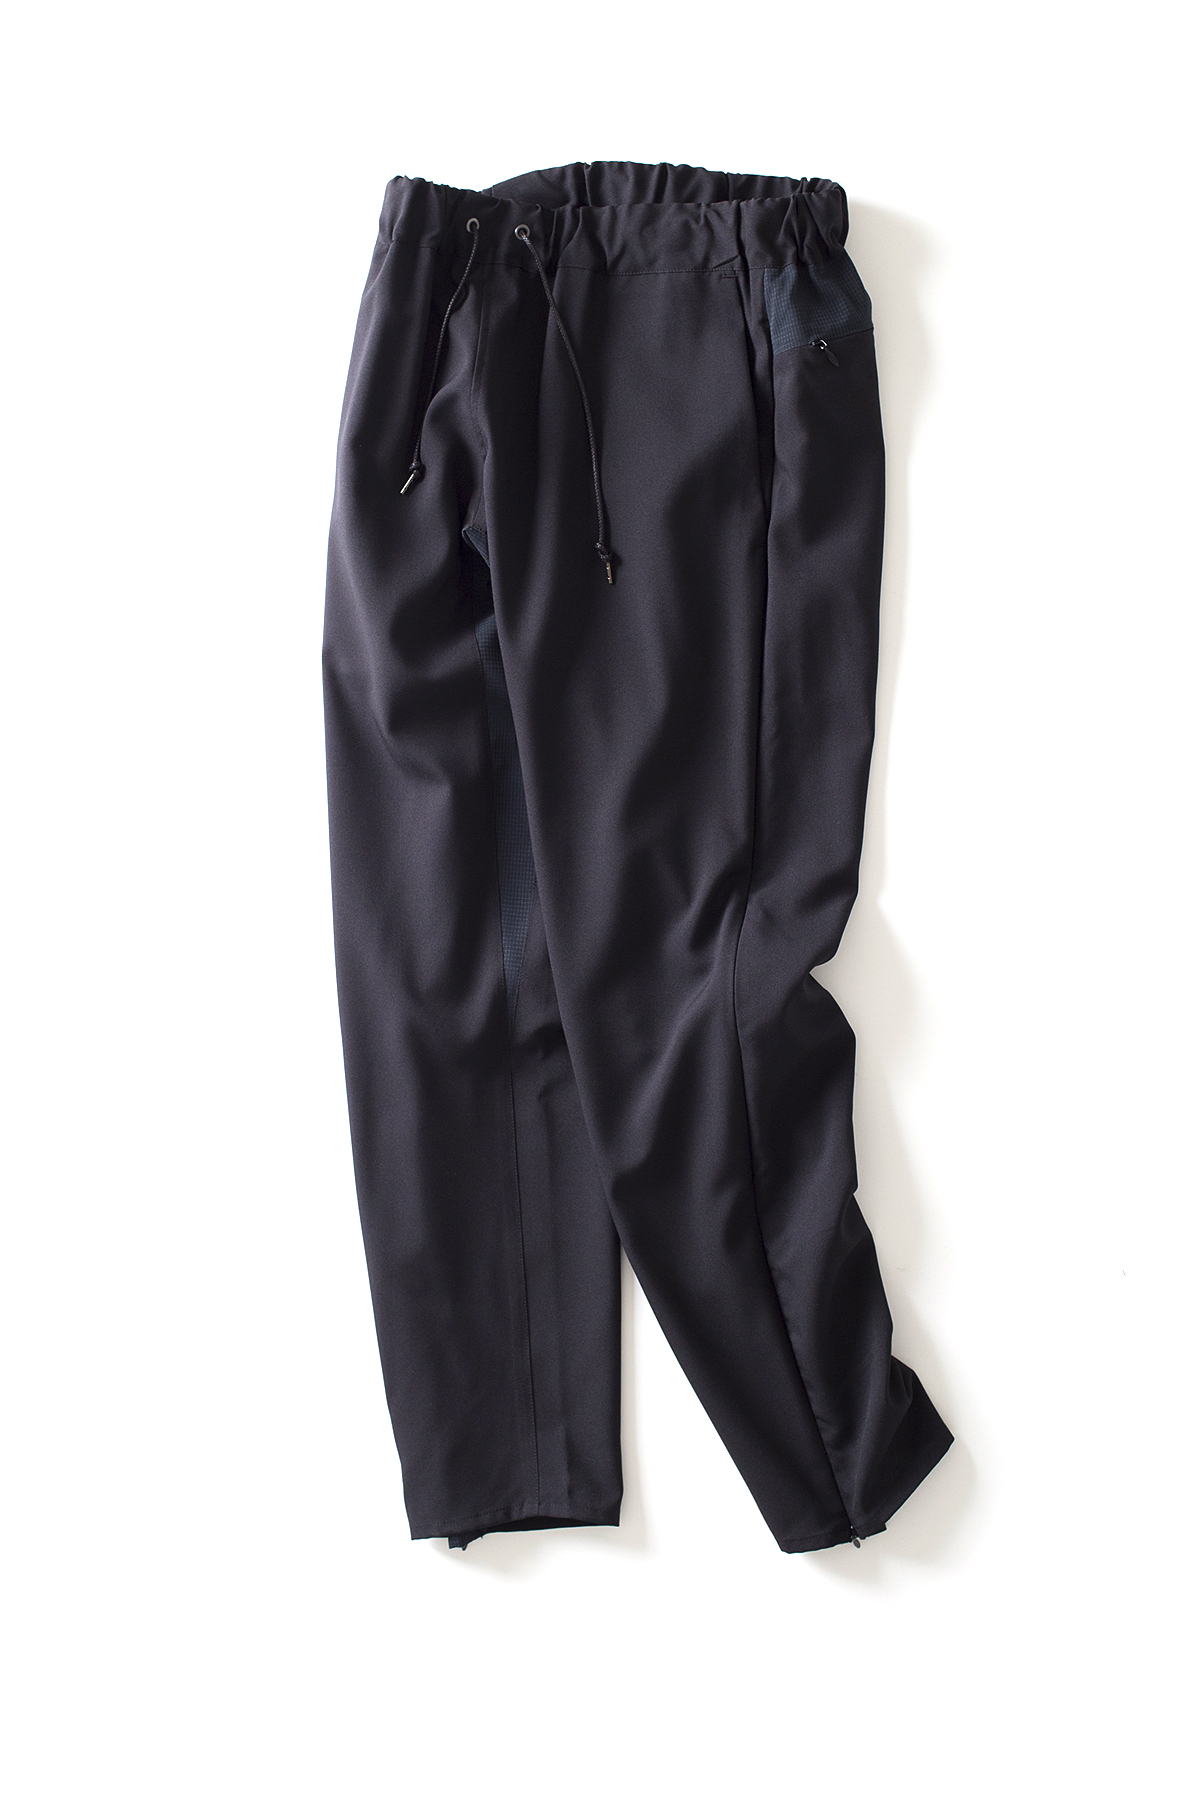 EEL : Bench Pants (Black)